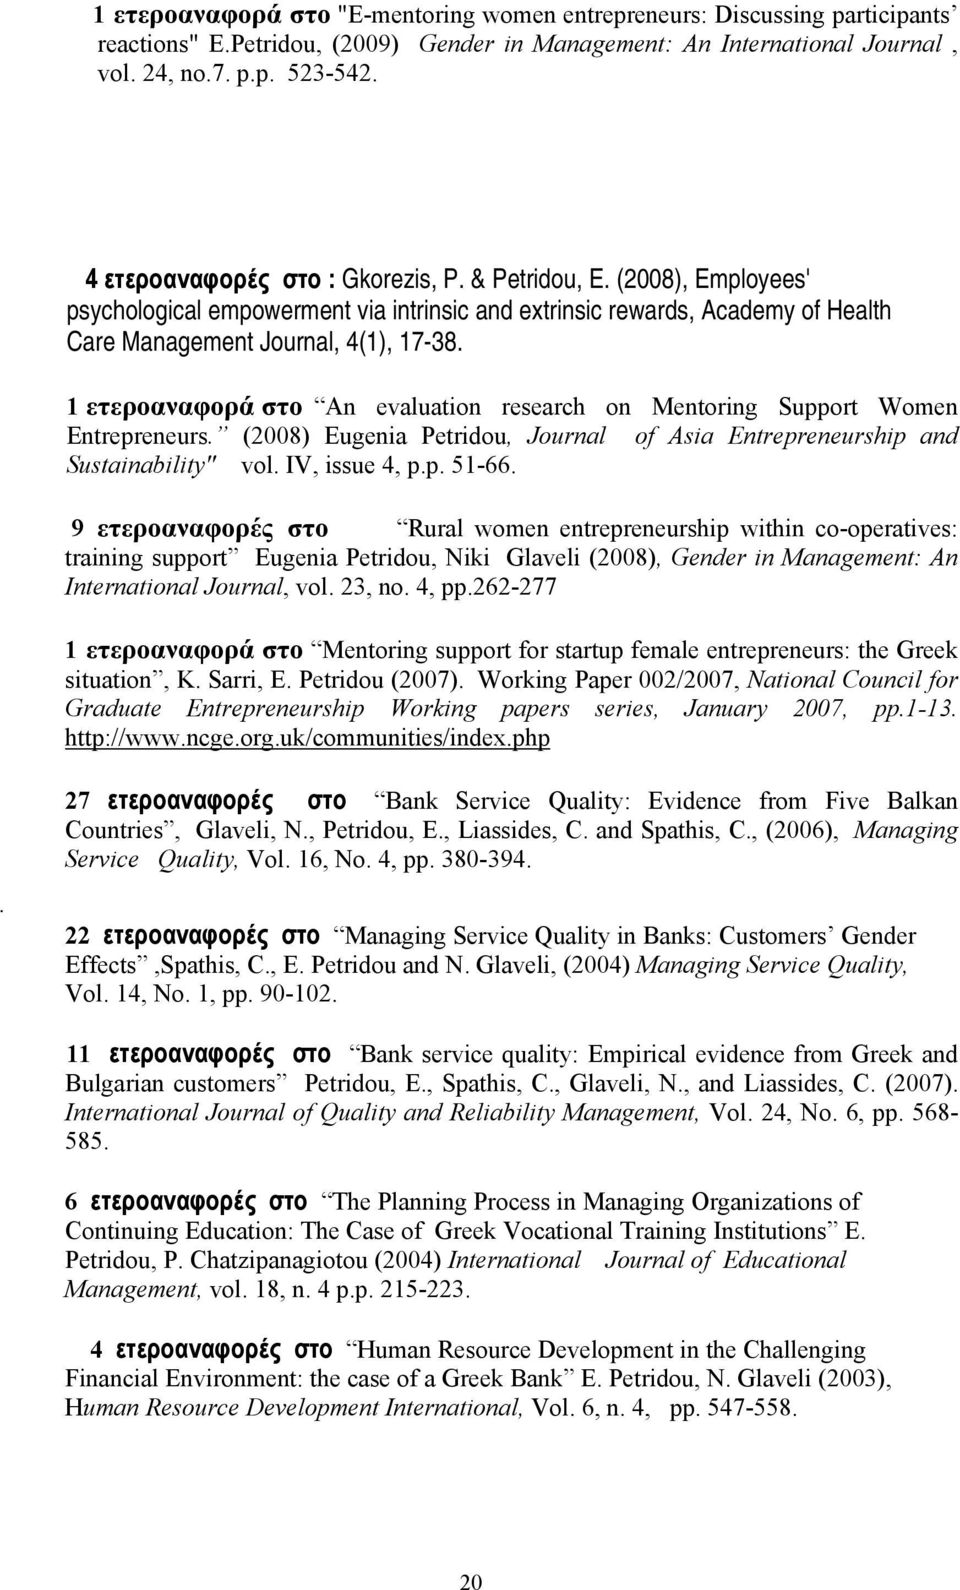 "1 ετεροαναφορά στο An evaluation research on Mentoring Support Women Entrepreneurs. (2008) Eugenia Petridou, Journal of Asia Entrepreneurship and Sustainability"" vol. IV, issue 4, p.p. 51-66."